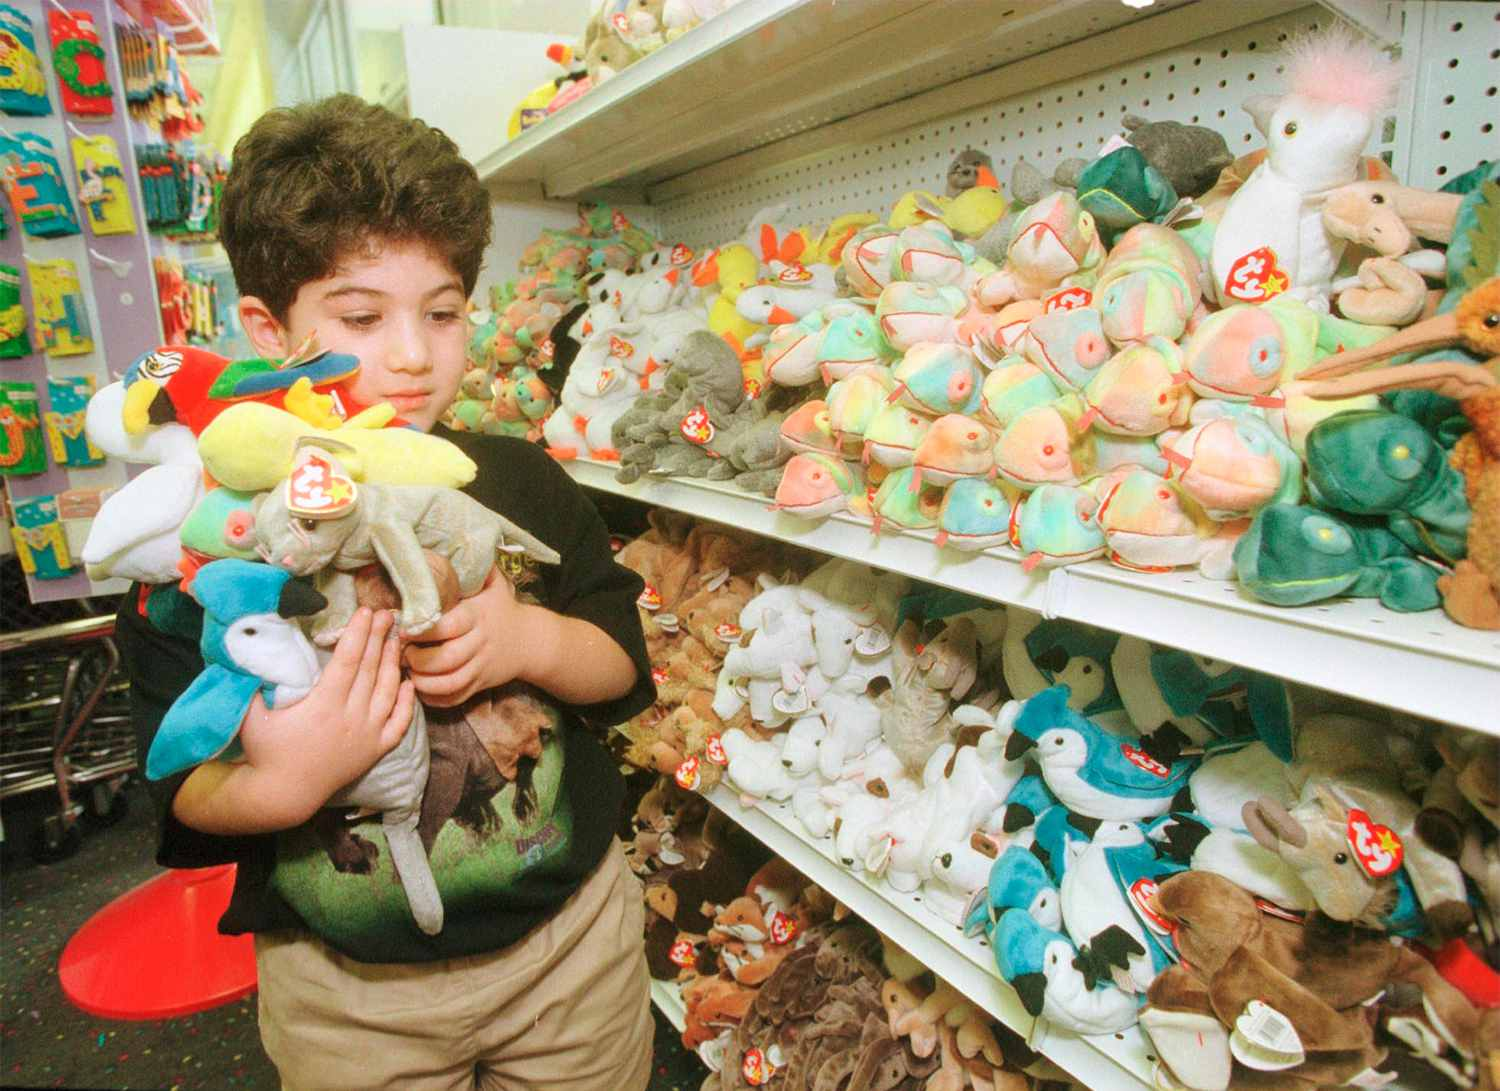 a36d6b28004 Donate. Child holding Ty beanie babies at a store